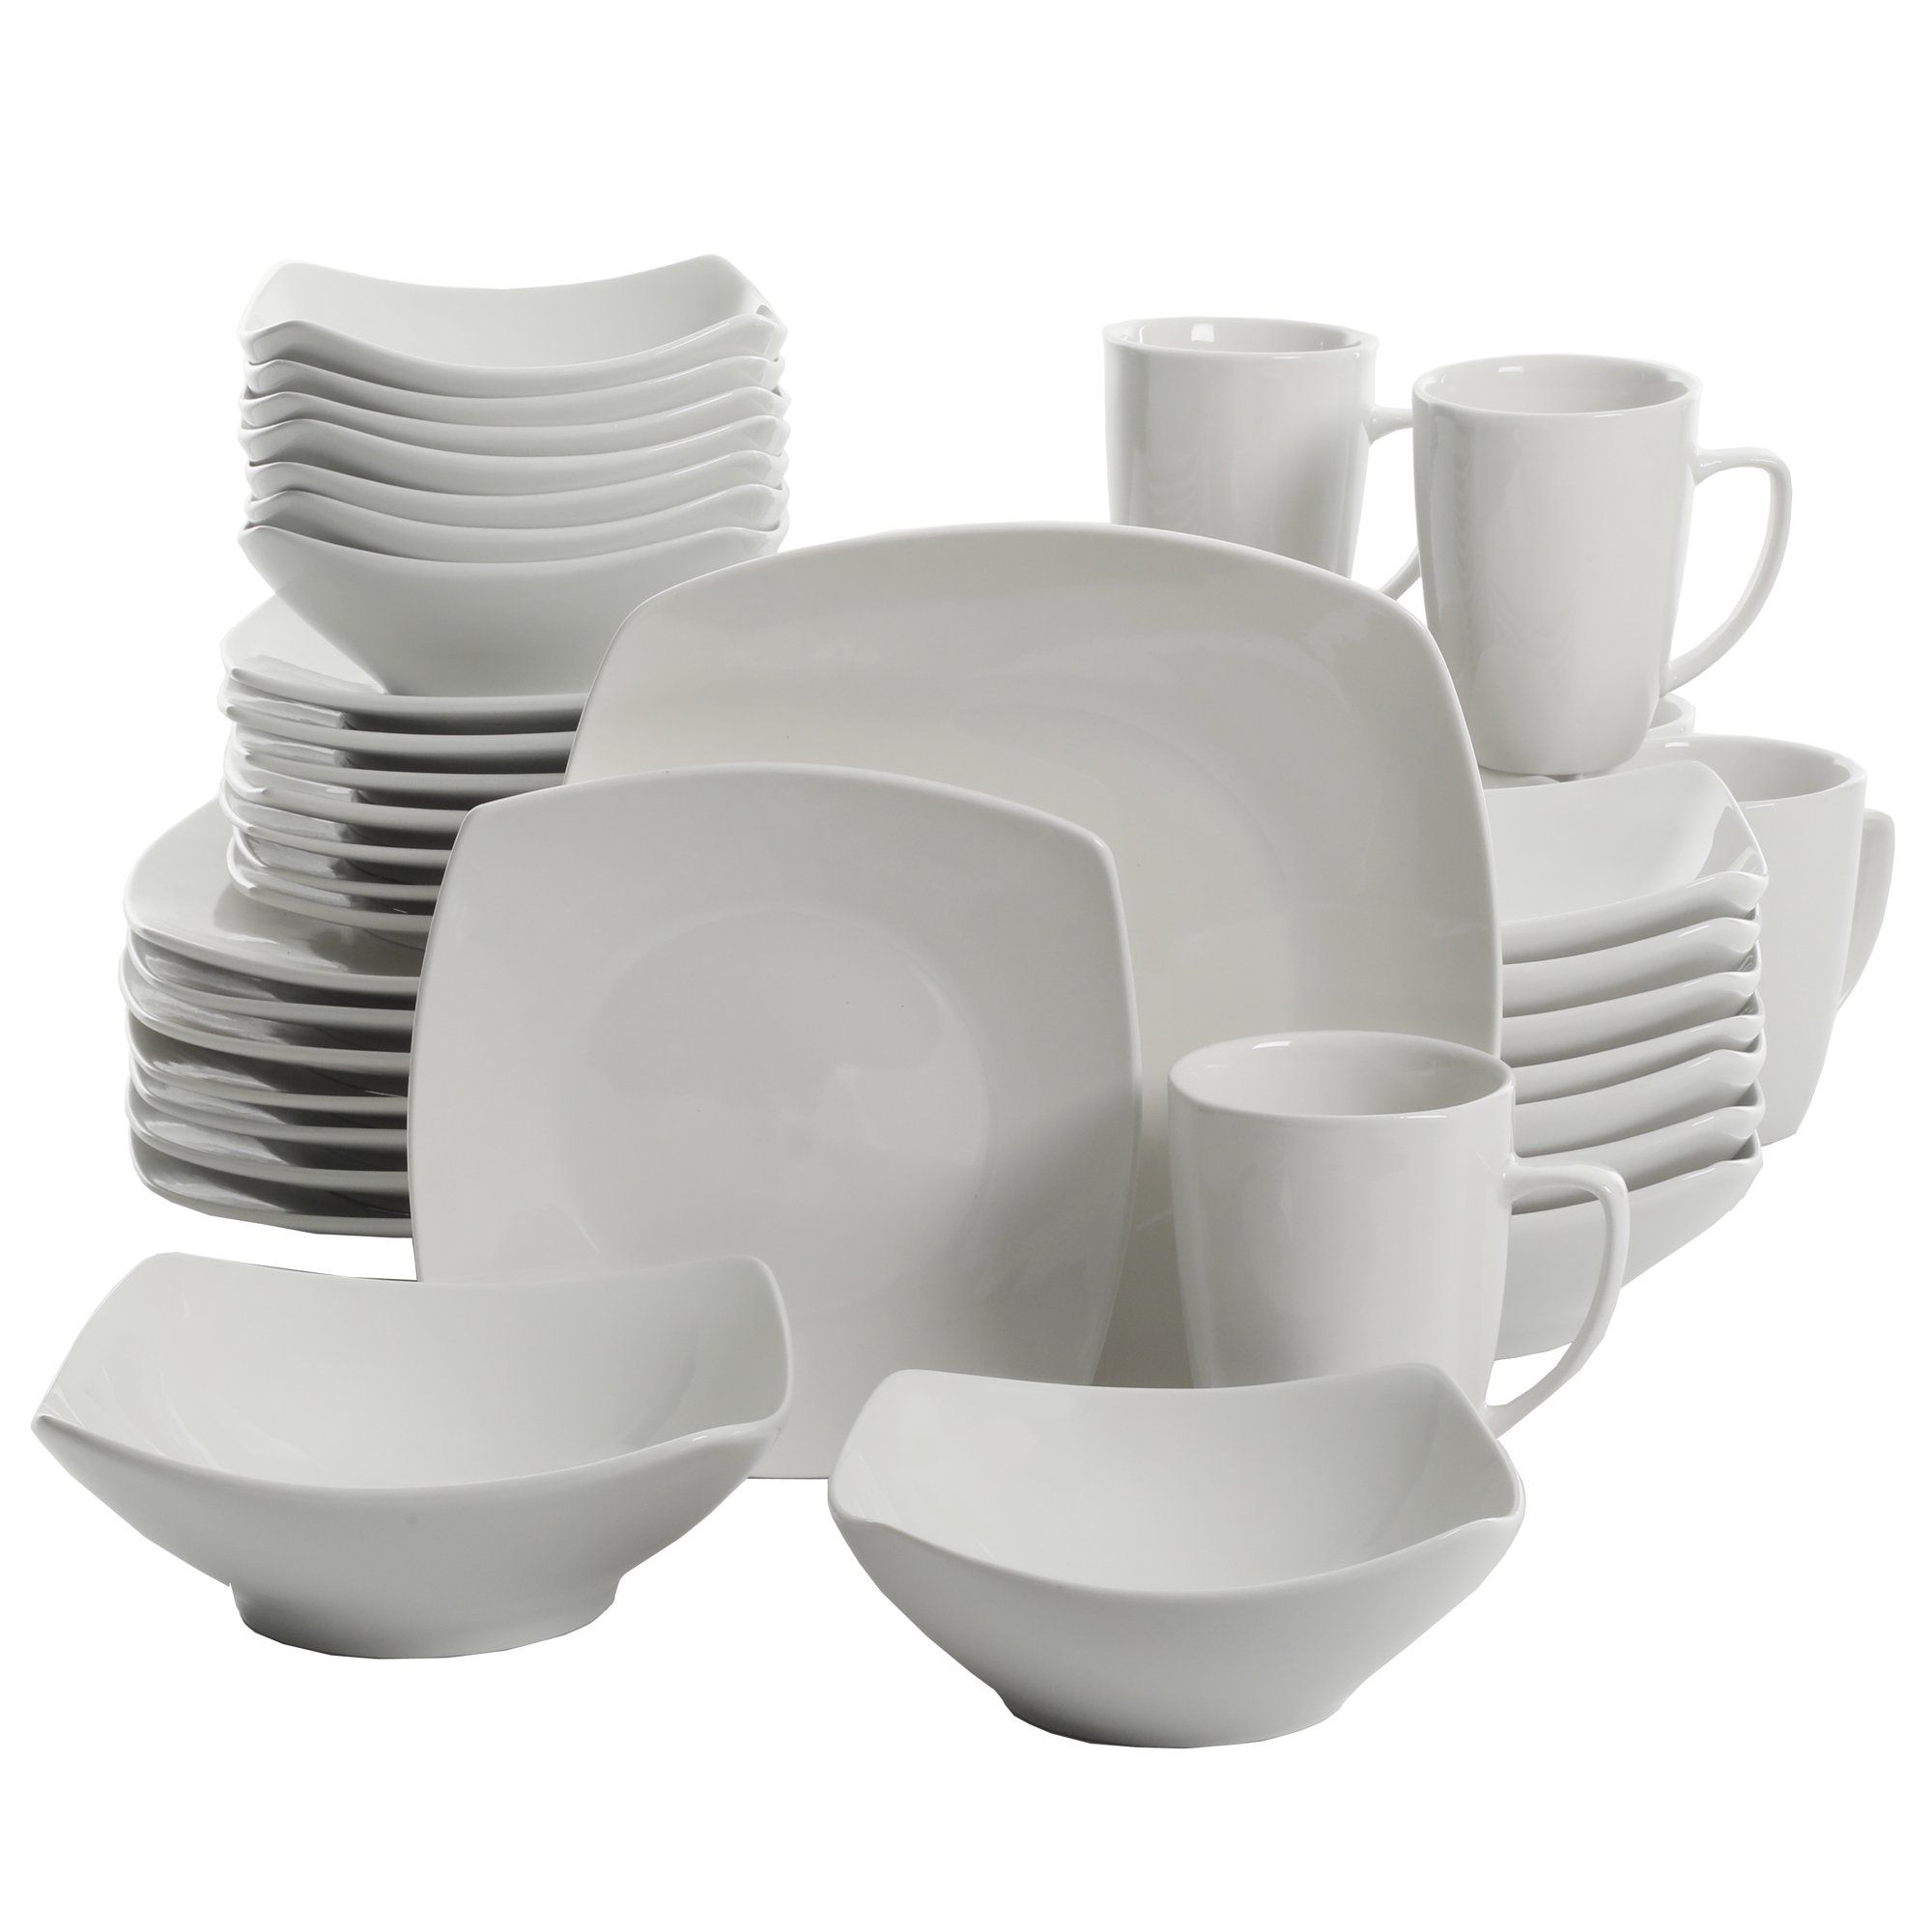 Gibson Home Everyday Square 12 Piece Dinnerware Set Walmart Com Dinnerware Set White Dinnerware Set Ceramic Kitchen White dinnerware sets for 12